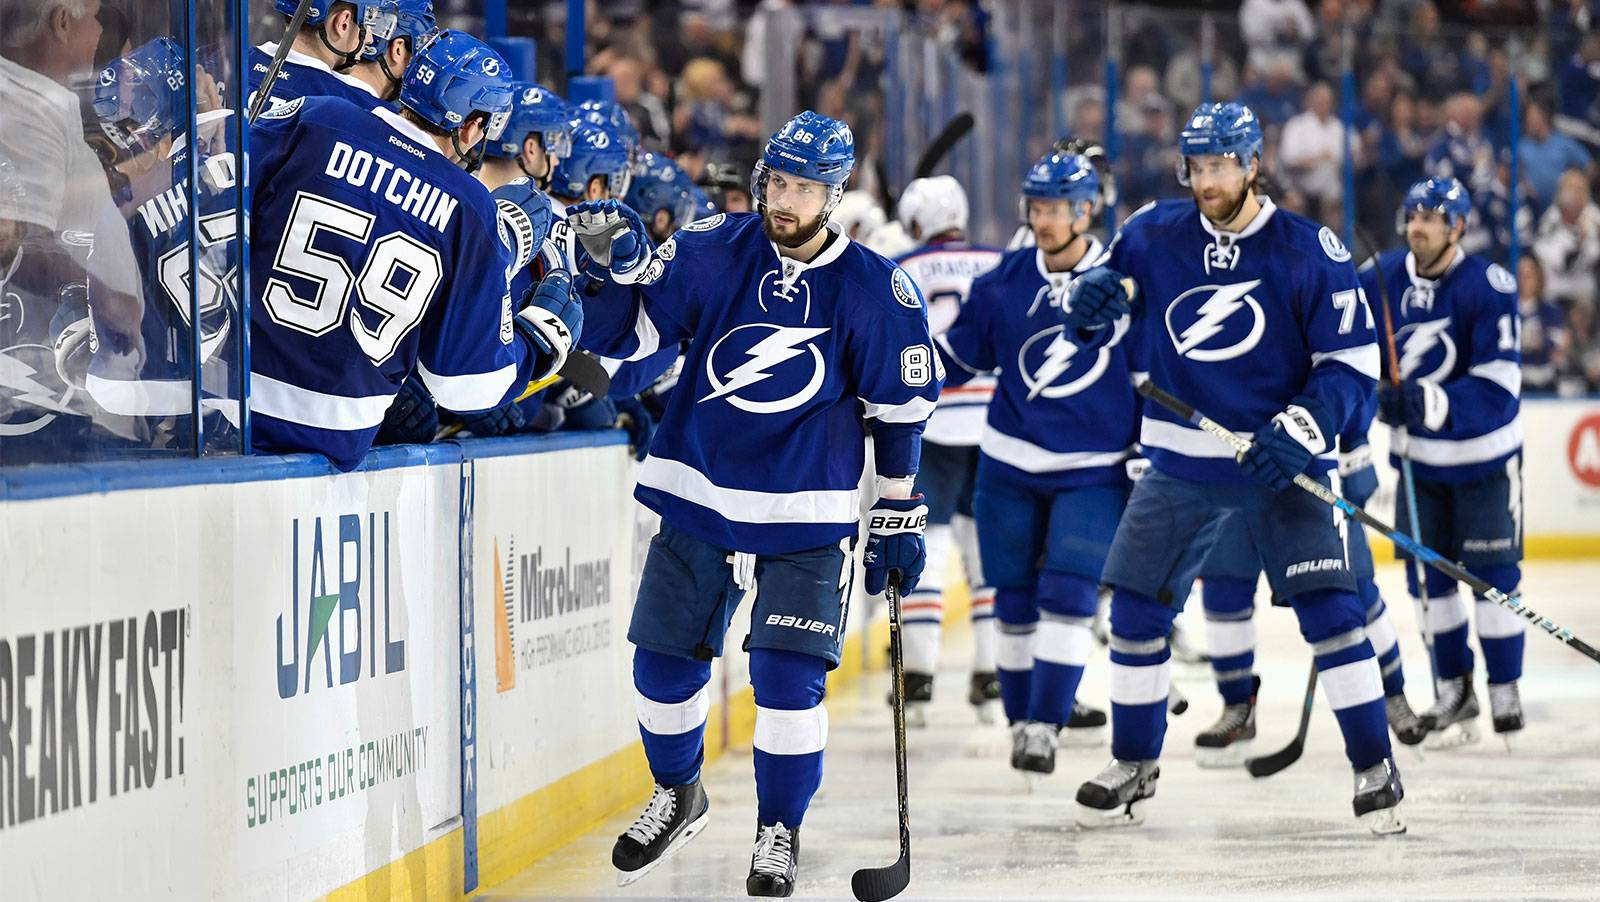 Lightning look like team to beat for Stanley Cup according to oddsmakers